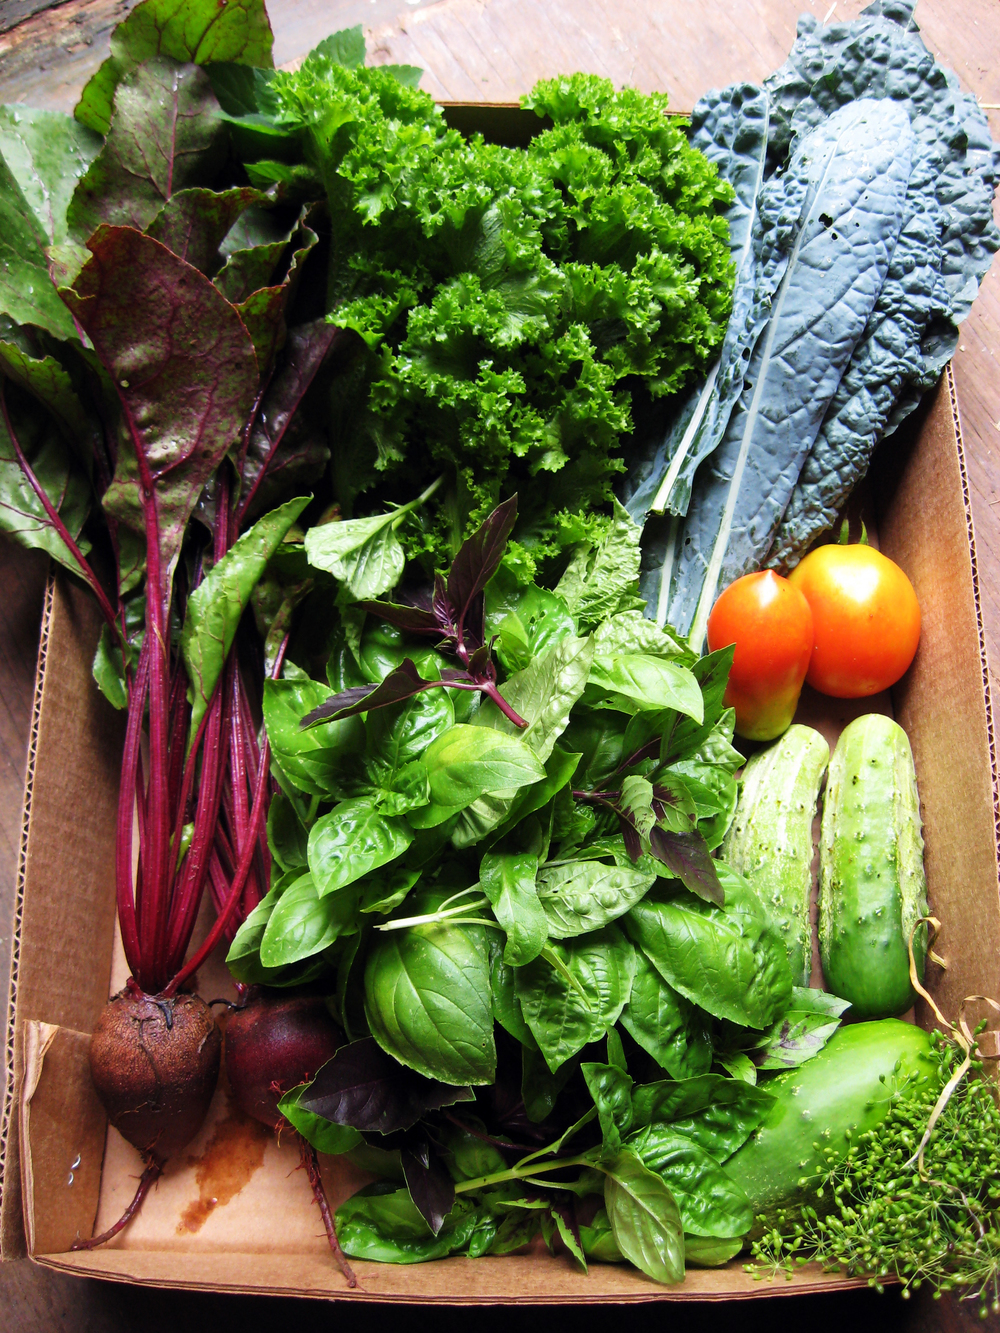 IMAGE DESCRIPTION:  A cardboard box holding various produce. Clockwise from left to bottom right: beets, kale, basil, tomatoes, cucumbers, and fennel seed.